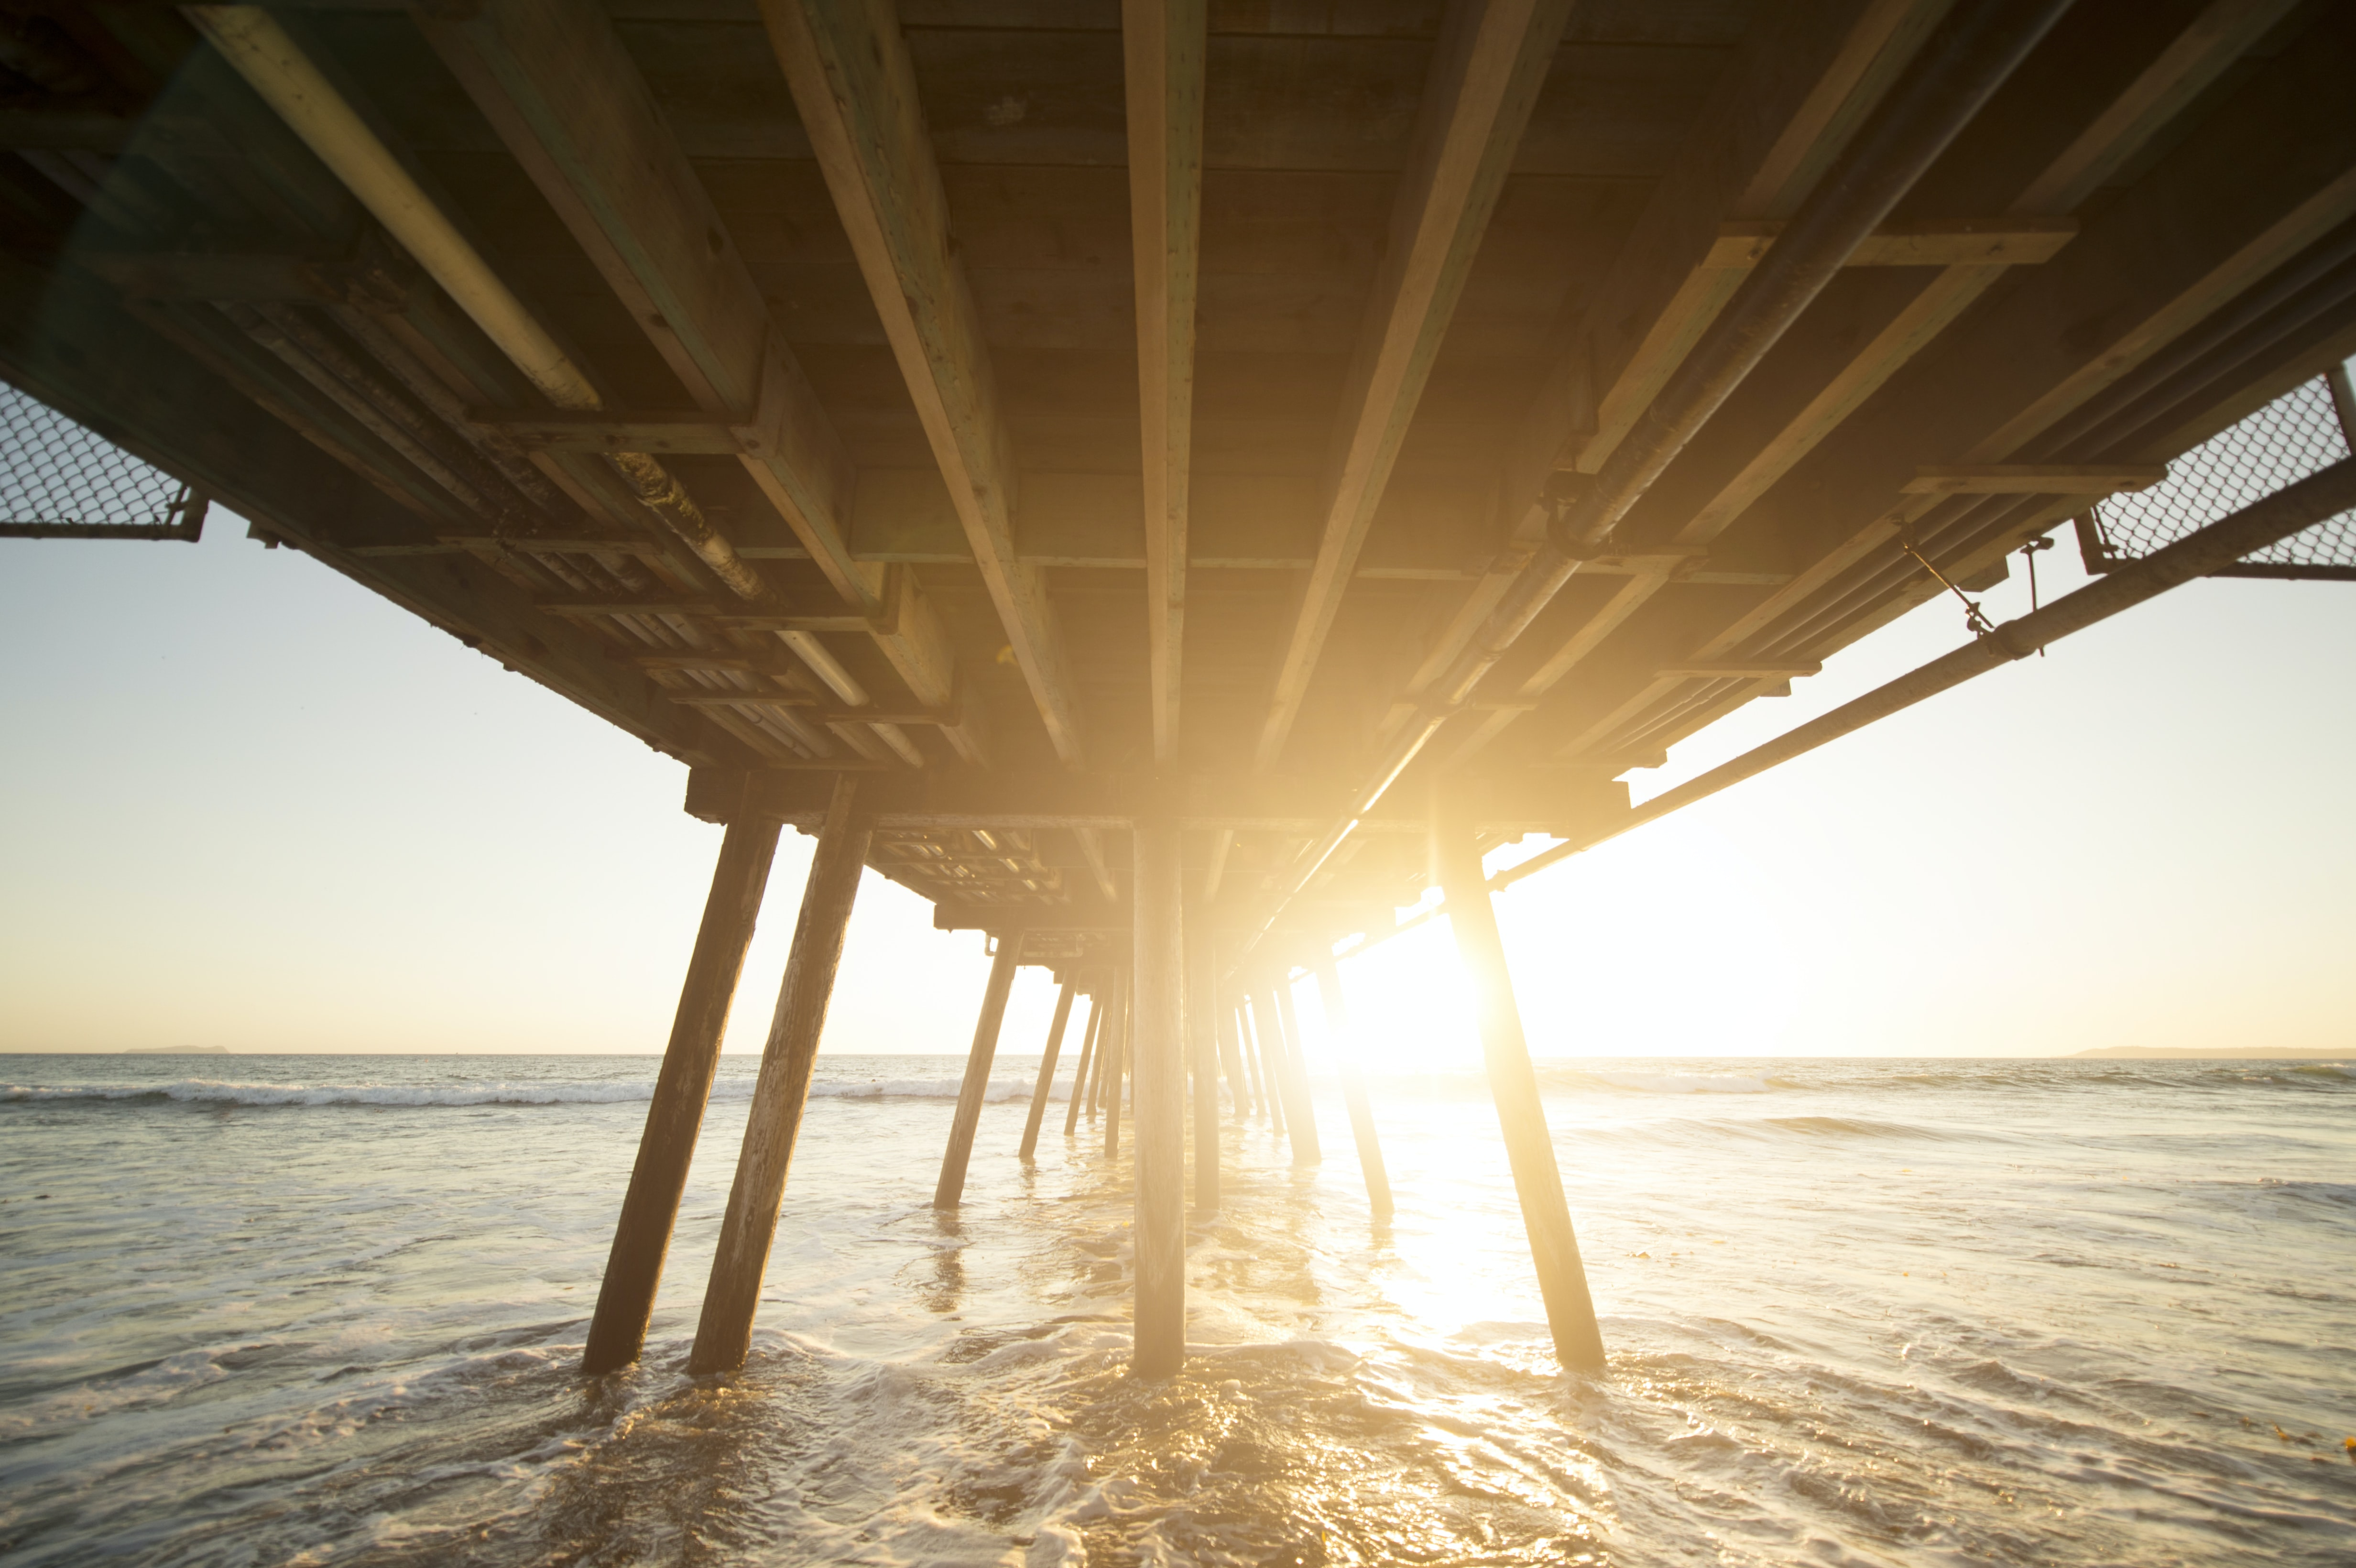 Sunrise from below a San Diego pier with sunlight reflecting on ocean